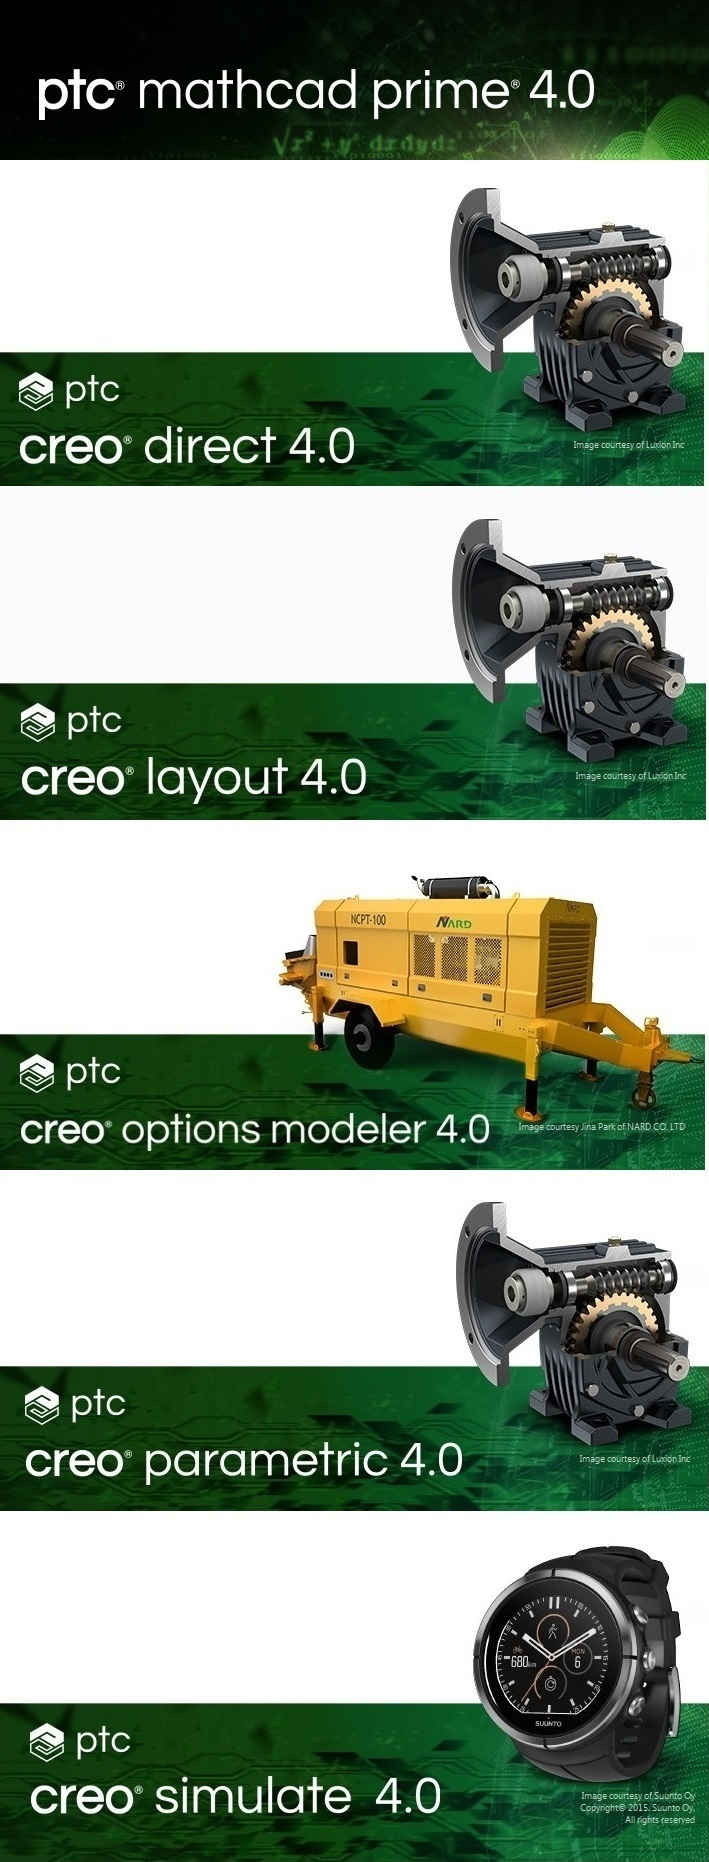 Download PTC Creo 4.0 M040 + HelpCenter x64 full license forever